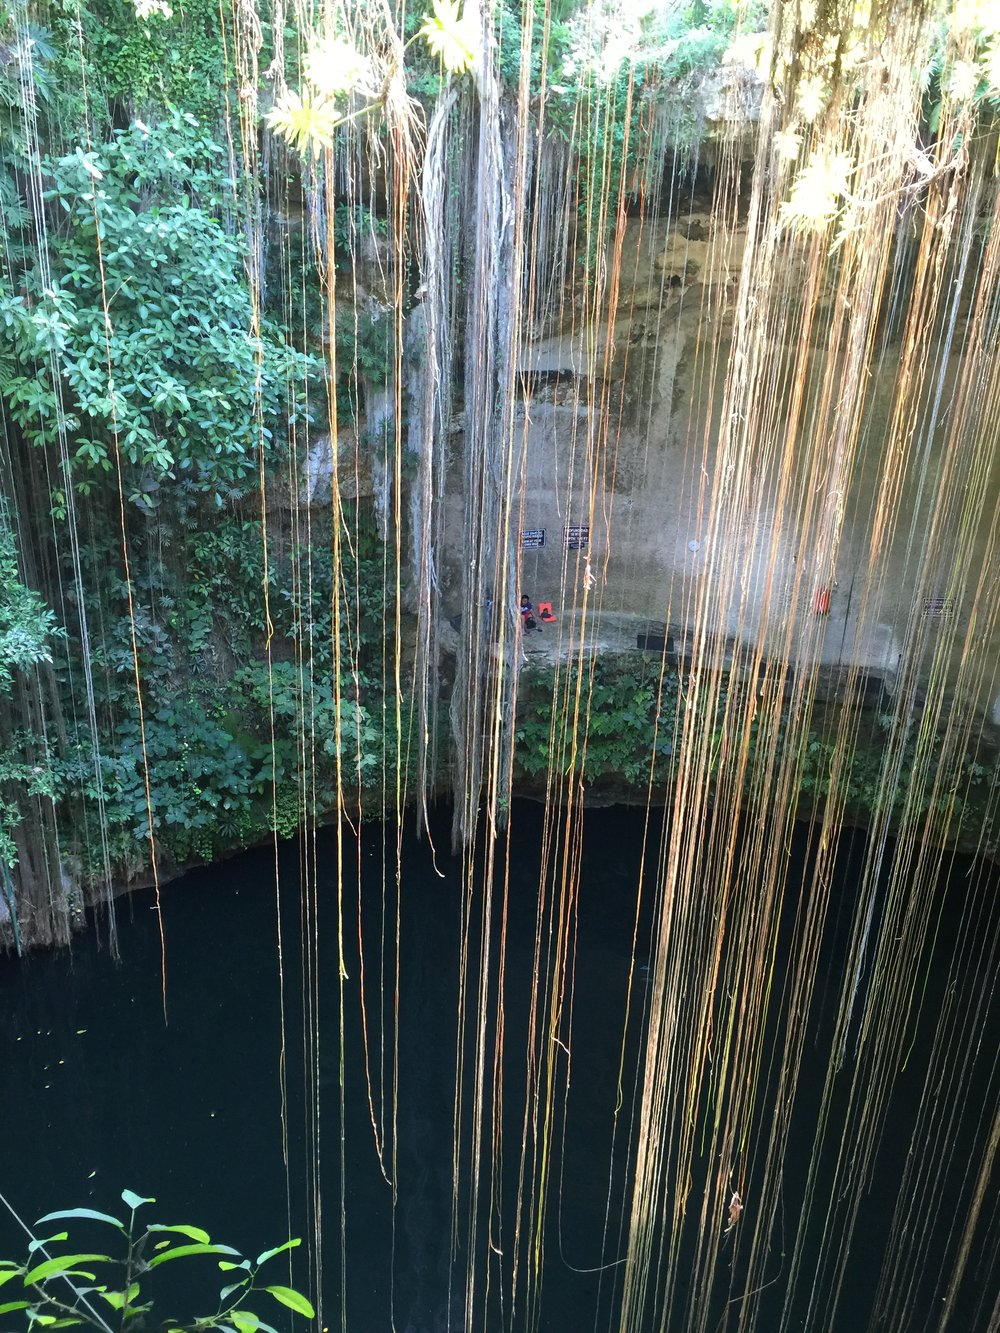 CENOTE IK KIL  - One of the most photogenic & beautiful cenotes in the Yucatan peninsula. Dive right in to cool you down in the humid heat.{Tip: Come here first, before you head to Chichen Itza, arrive before 8am to get the cenote to yourselves (save yourselves from those neon colored life jackets in your pictures) and catch breakfast at there local hotel restaurant right above the cenote! }